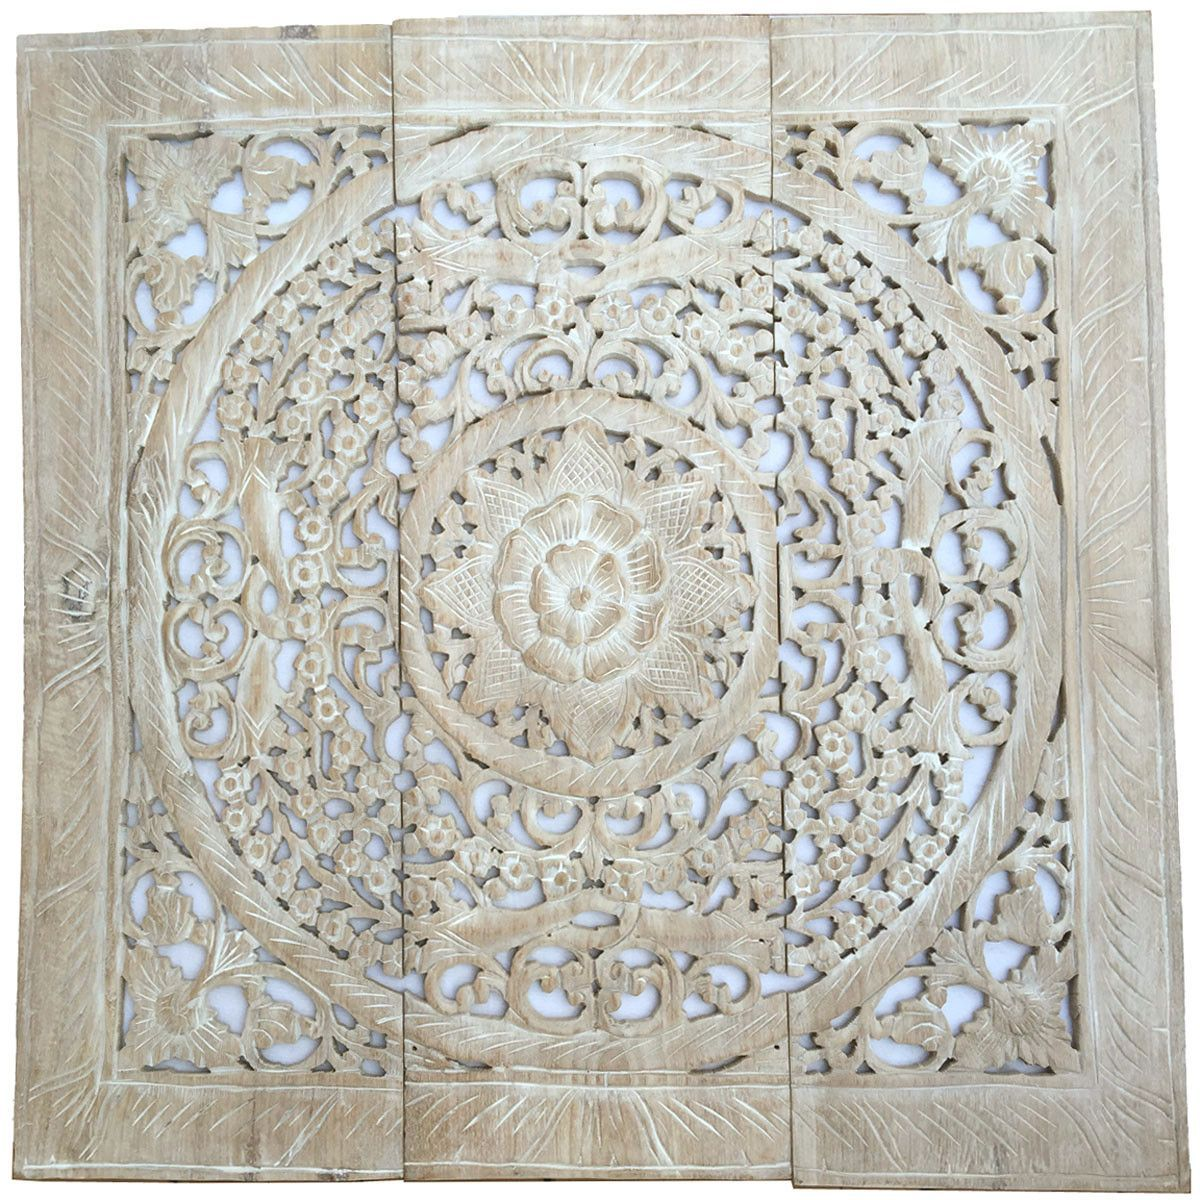 Elegant wood carved wall plaque wood carved floral wall art elegant wood carved wall plaque wood carved floral wall art balinese home decor asian wood carving wall art decorative thai wall relief panel sculpture amipublicfo Choice Image